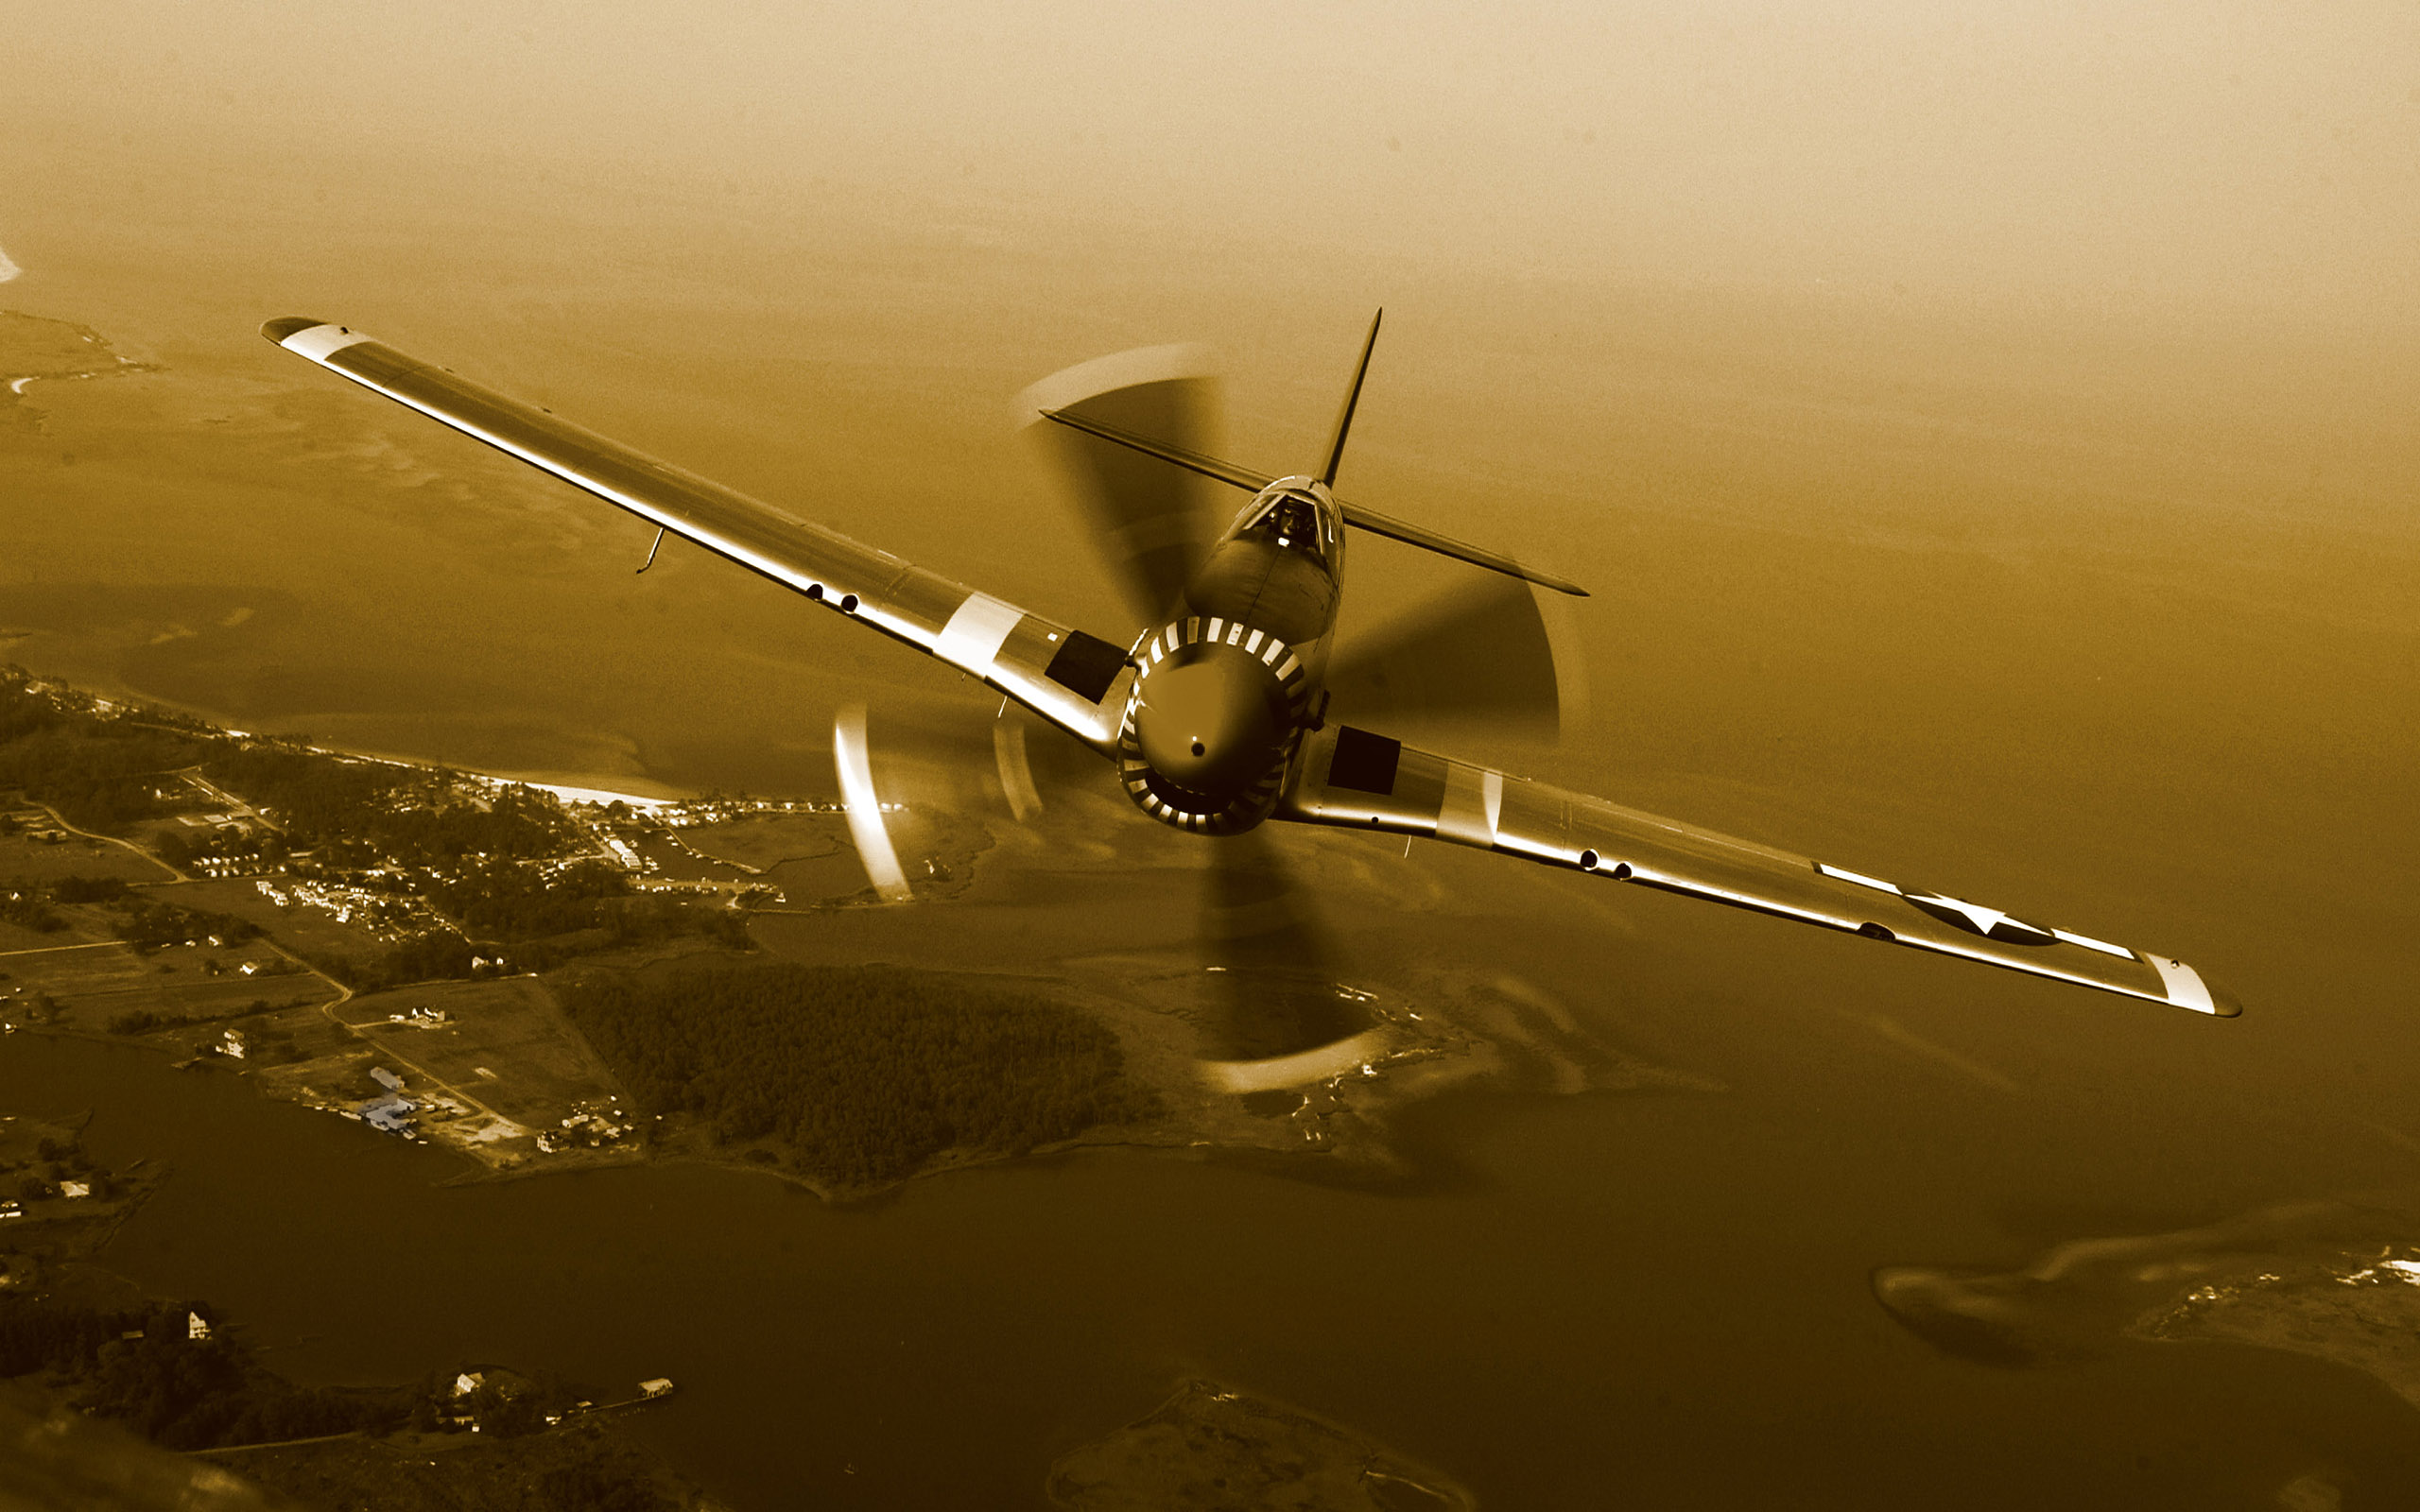 Vintage Airplane Wide Wallpapers 5934   Amazing Wallpaperz 2560x1600